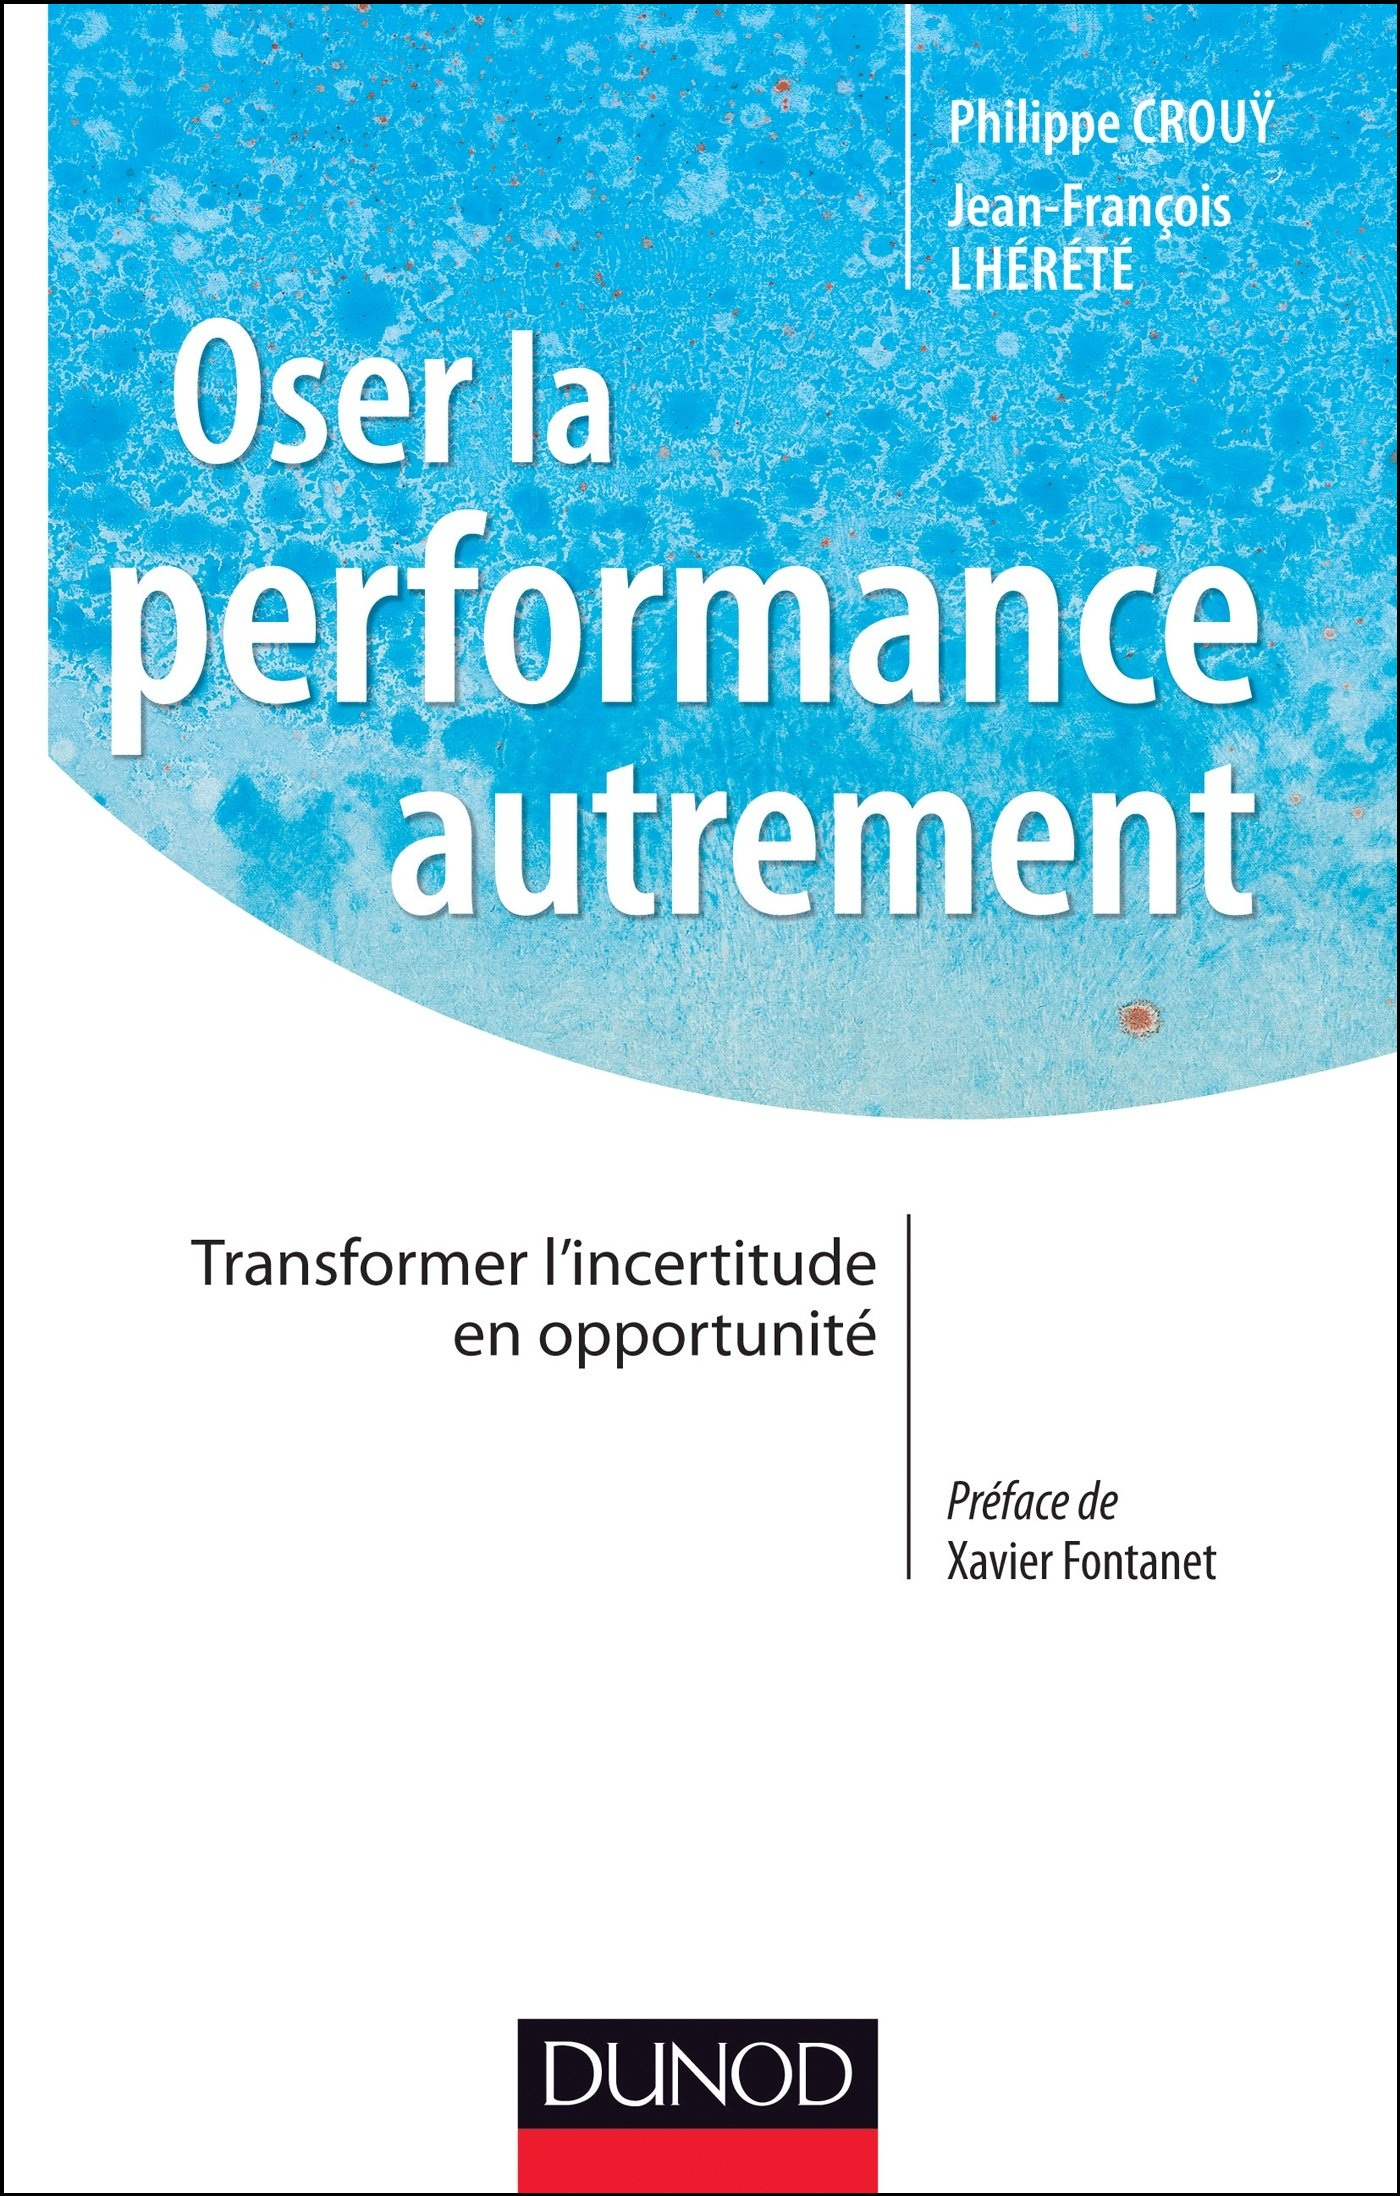 télécharger Oser la performance autrement : Transformer l'incertitude en opportunité